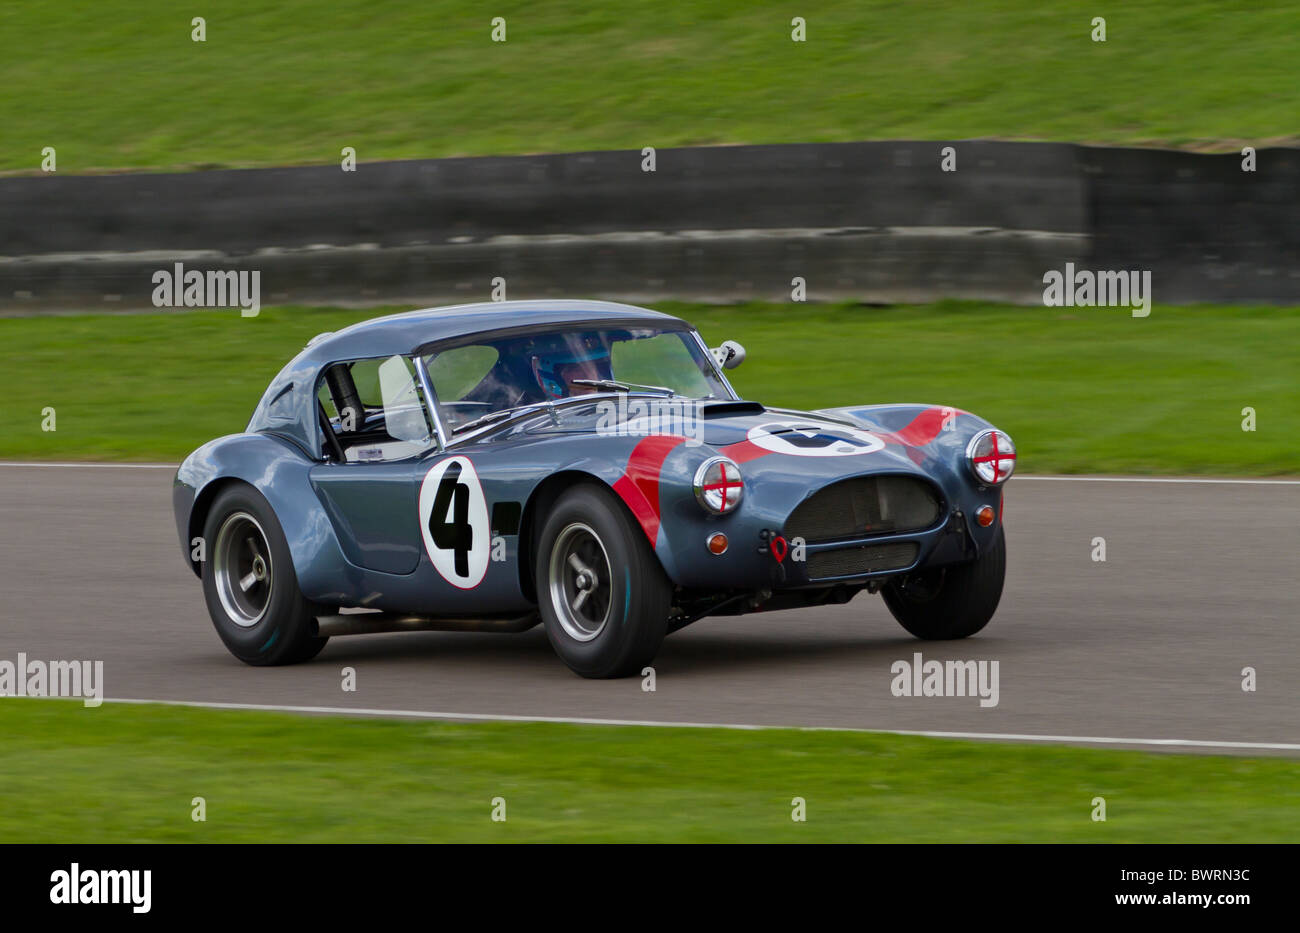 1962 AC Cobra with driver David Hart. RAC TT Celebration race. 2010 Goodwood Revival, Sussex, England, UK. - Stock Image